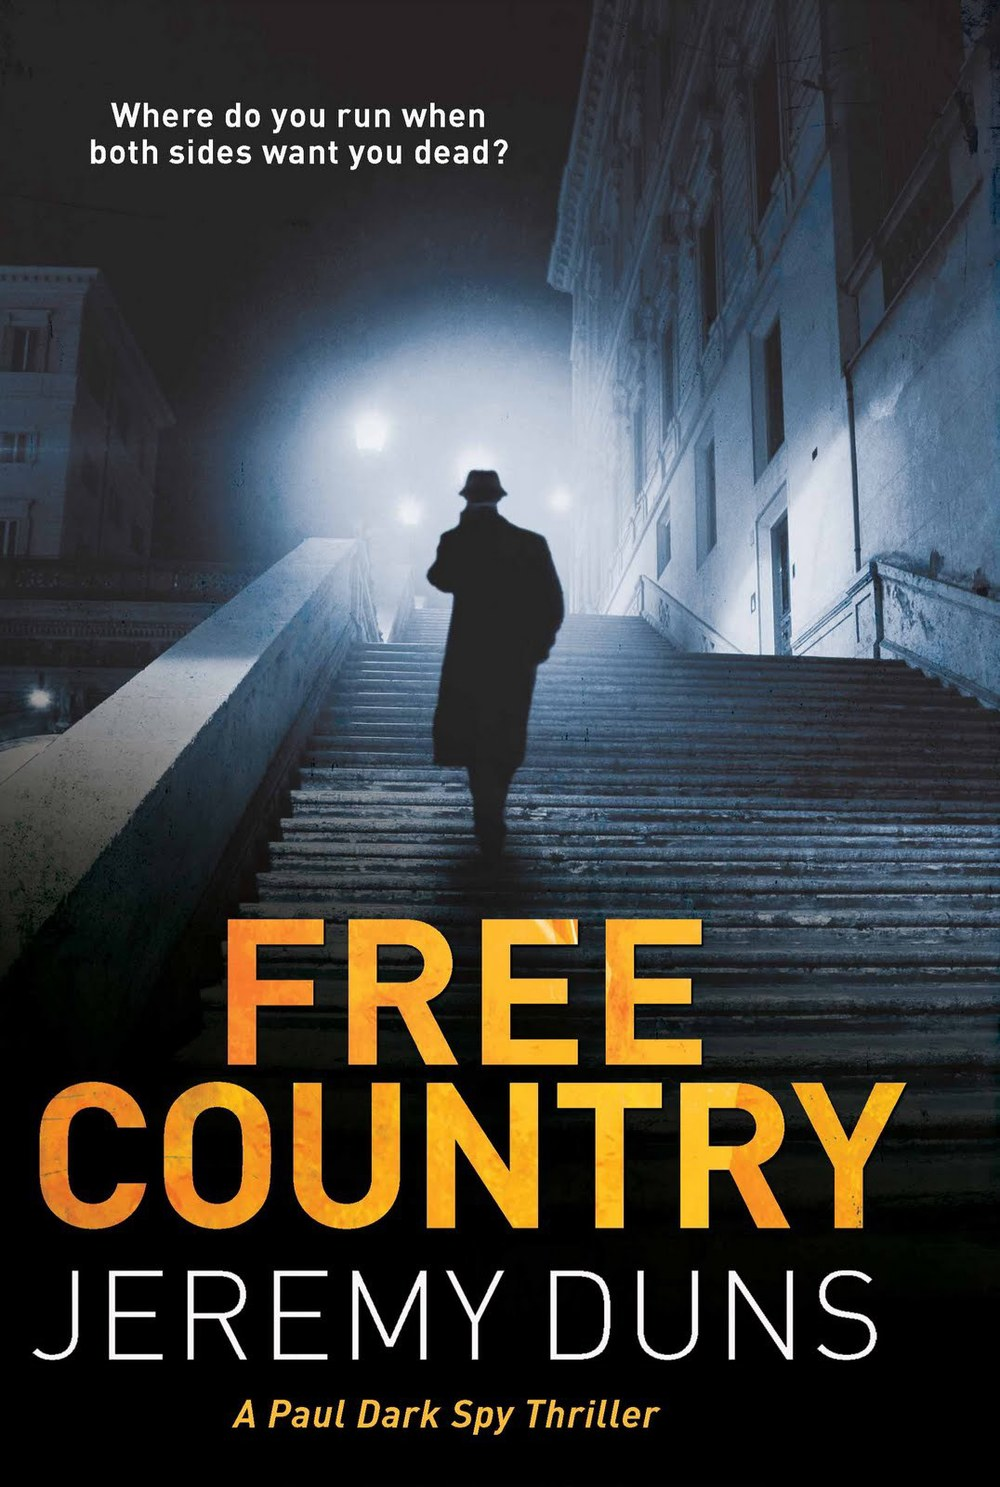 FREE_COUNTRY_UK_HB_FINAL_-_CROP.jpg